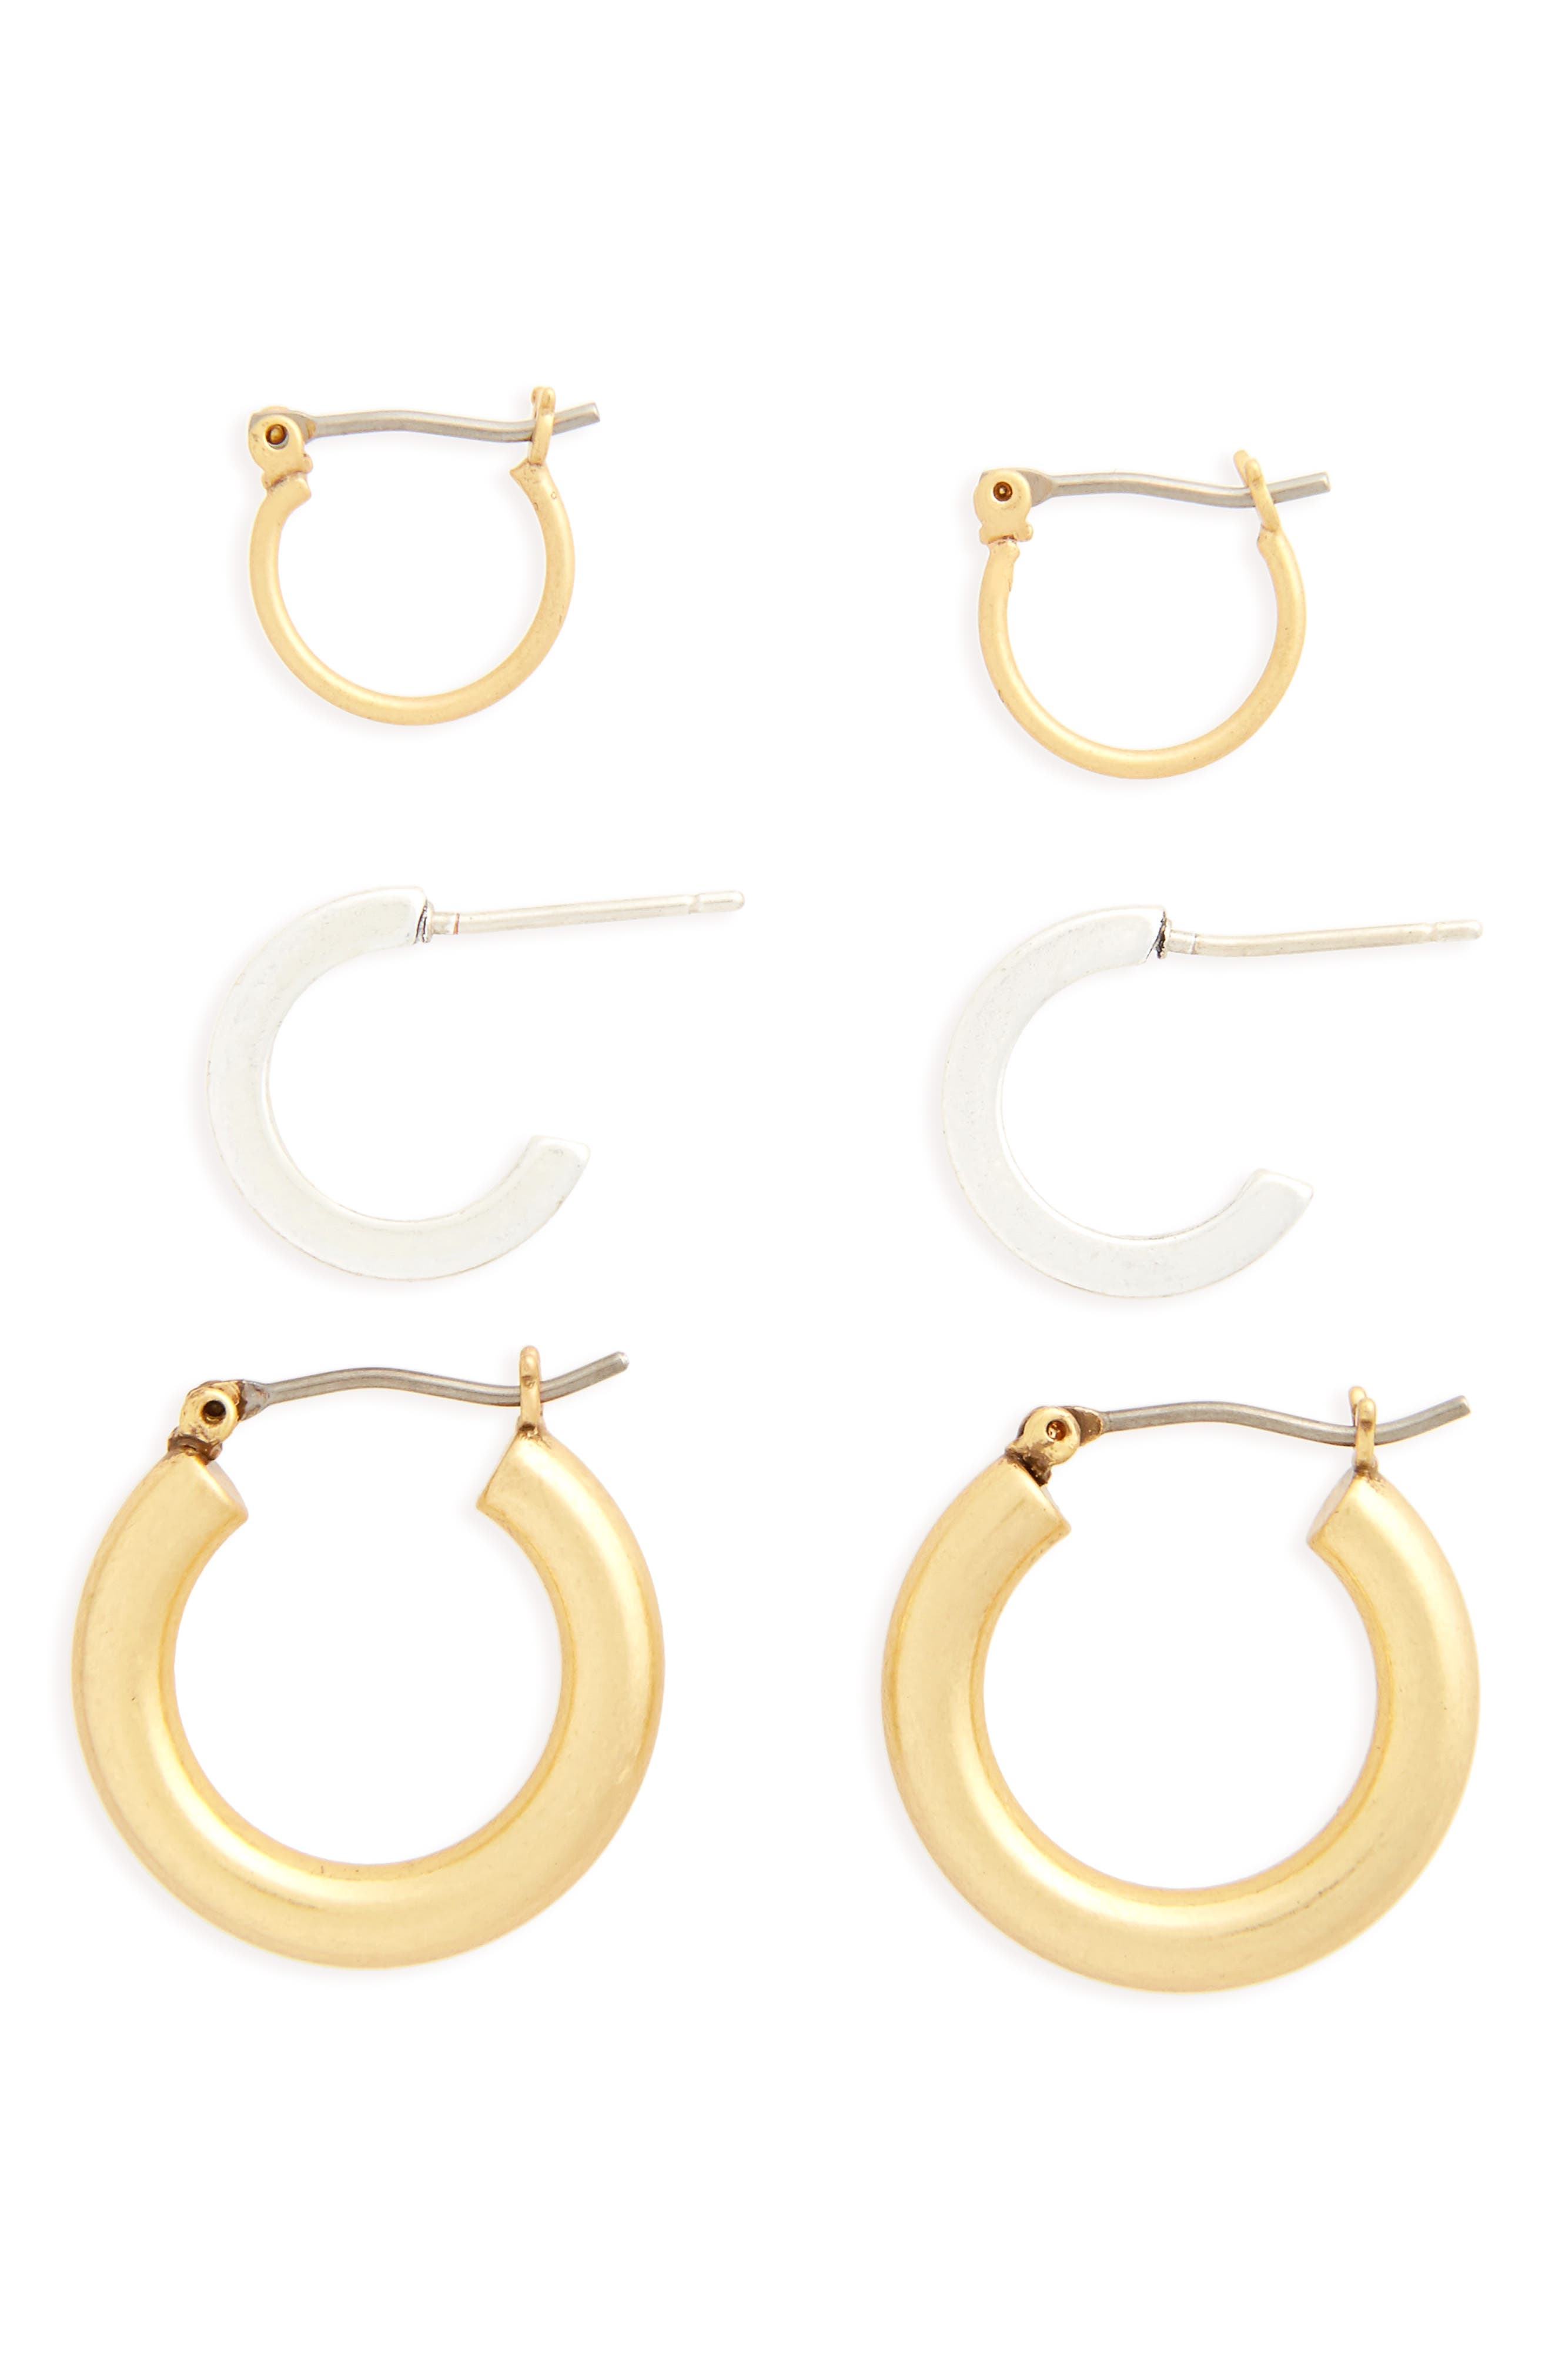 Set of 3 Mini Hoop Earrings,                             Main thumbnail 1, color,                             040